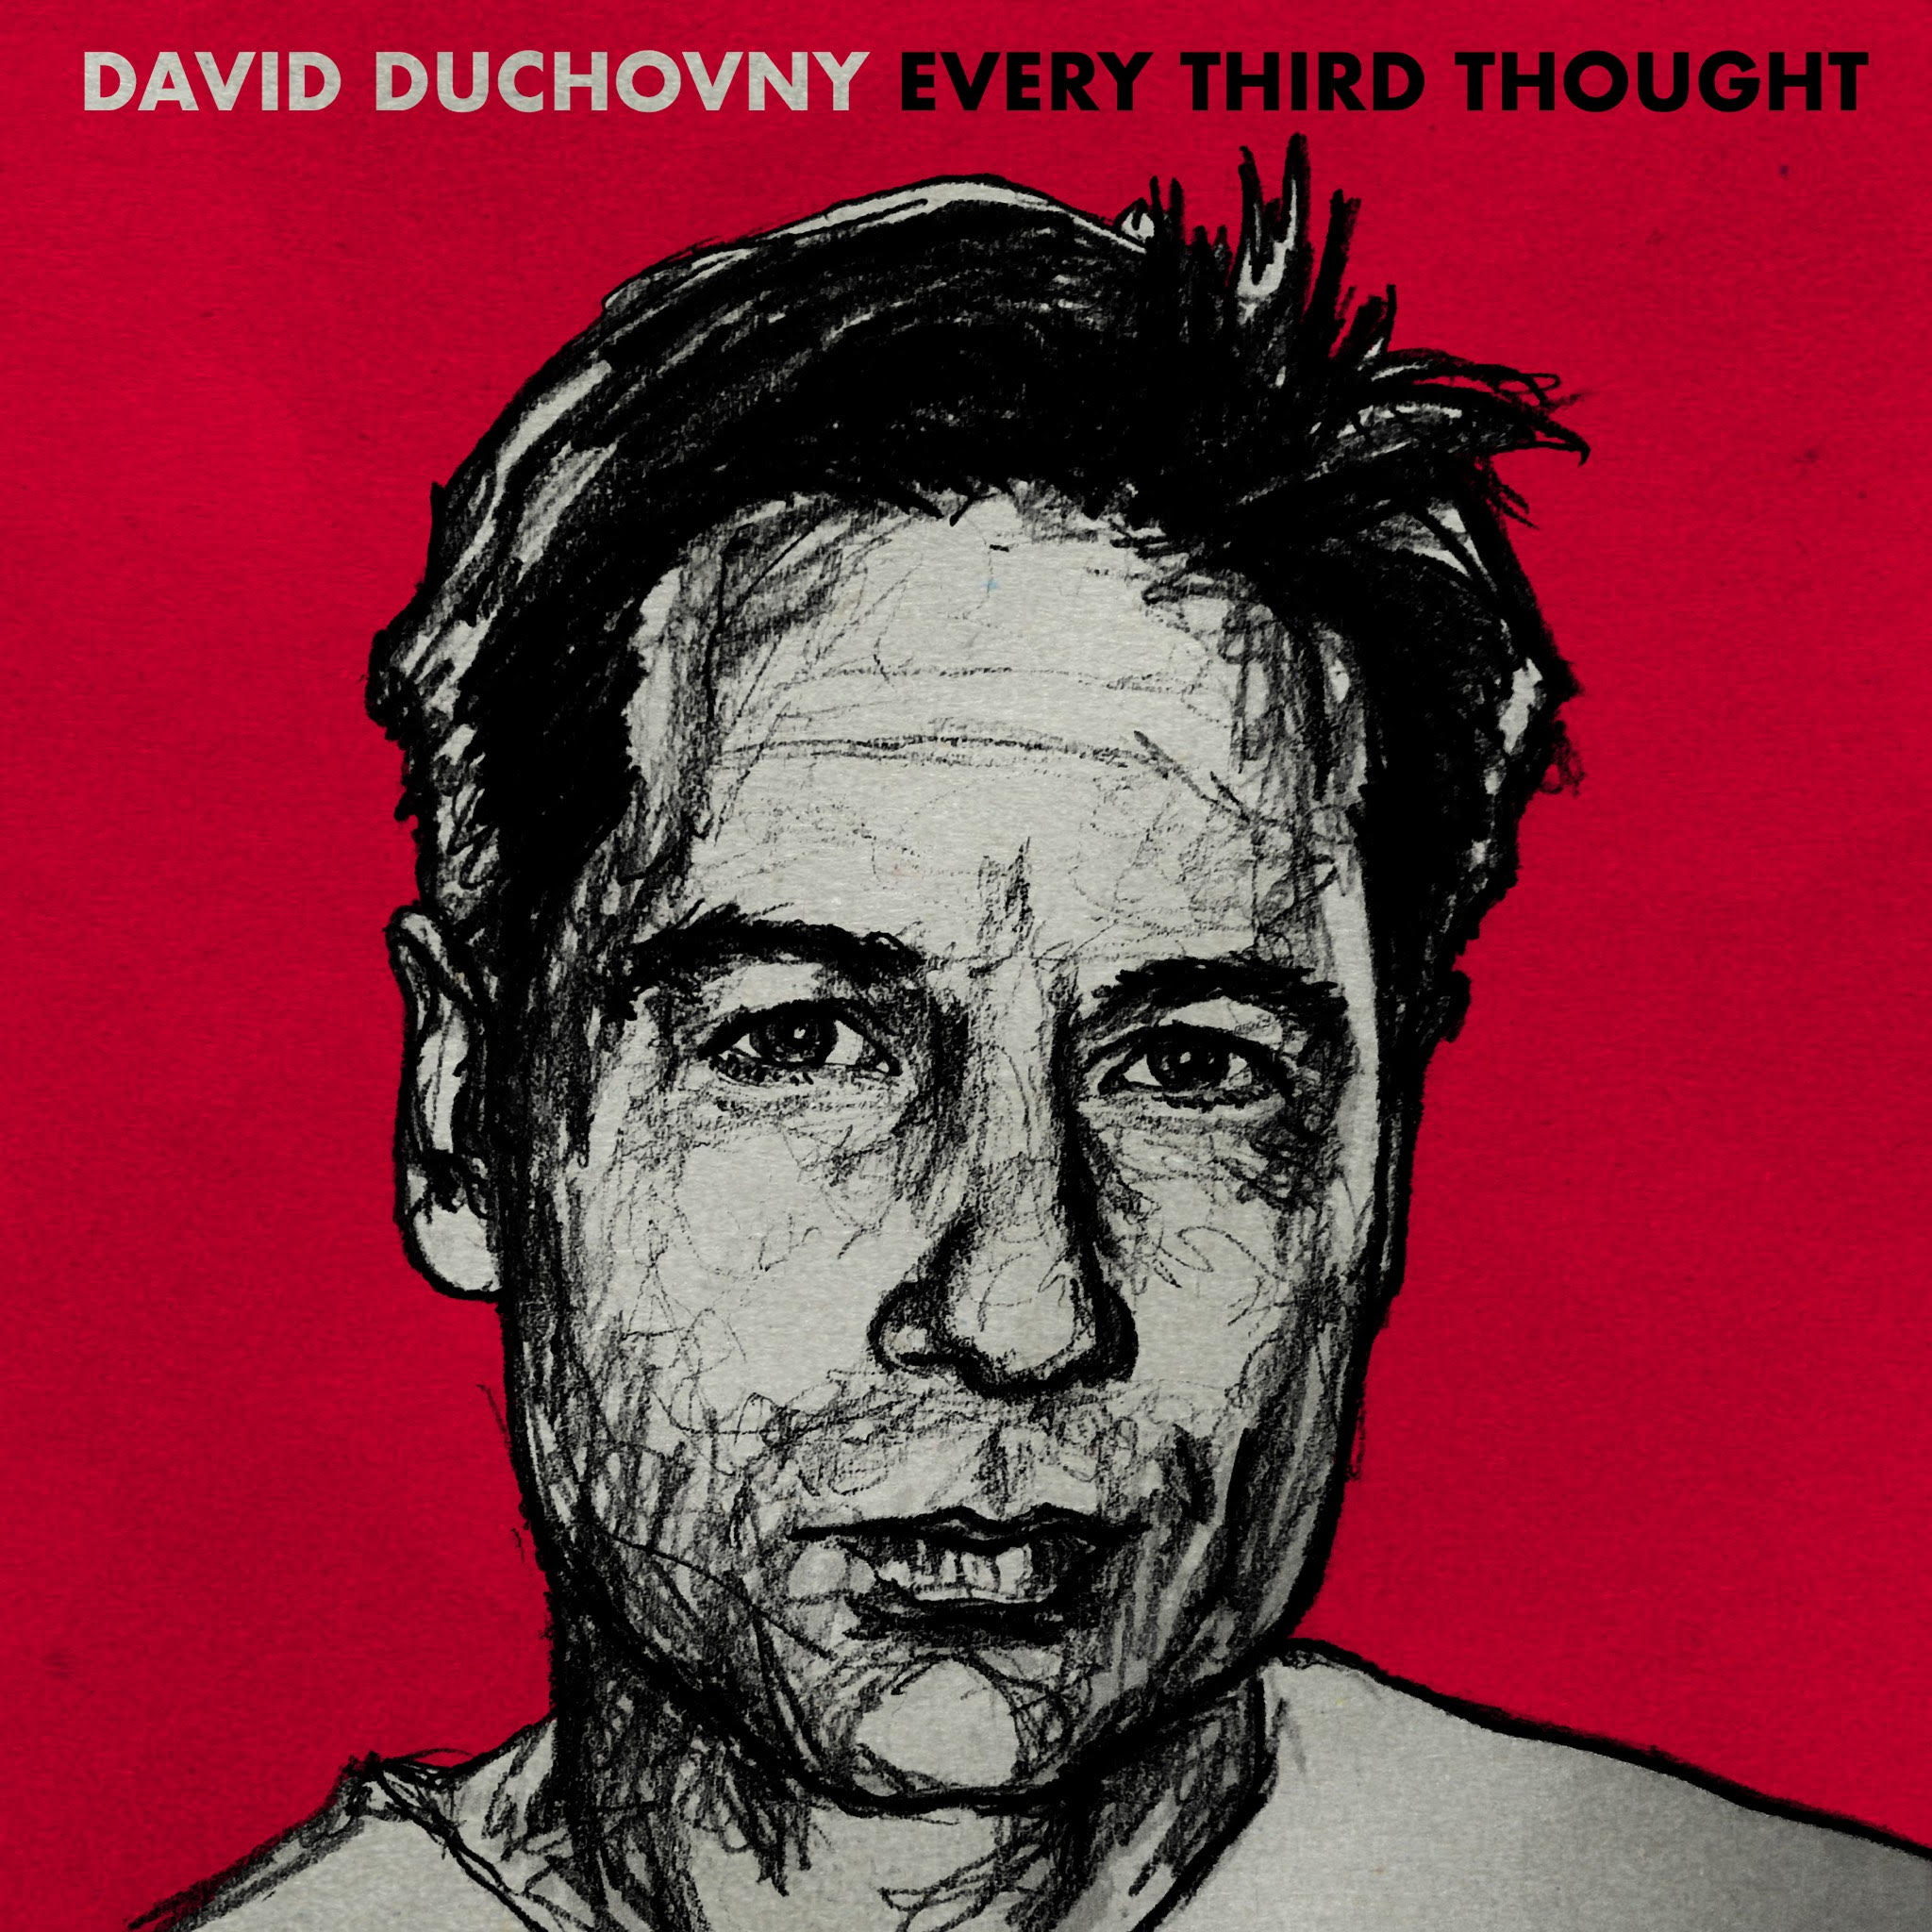 duchovny every third thought David Duchovny gives Track by Track breakdown of his new album, Every Third Thought: Stream